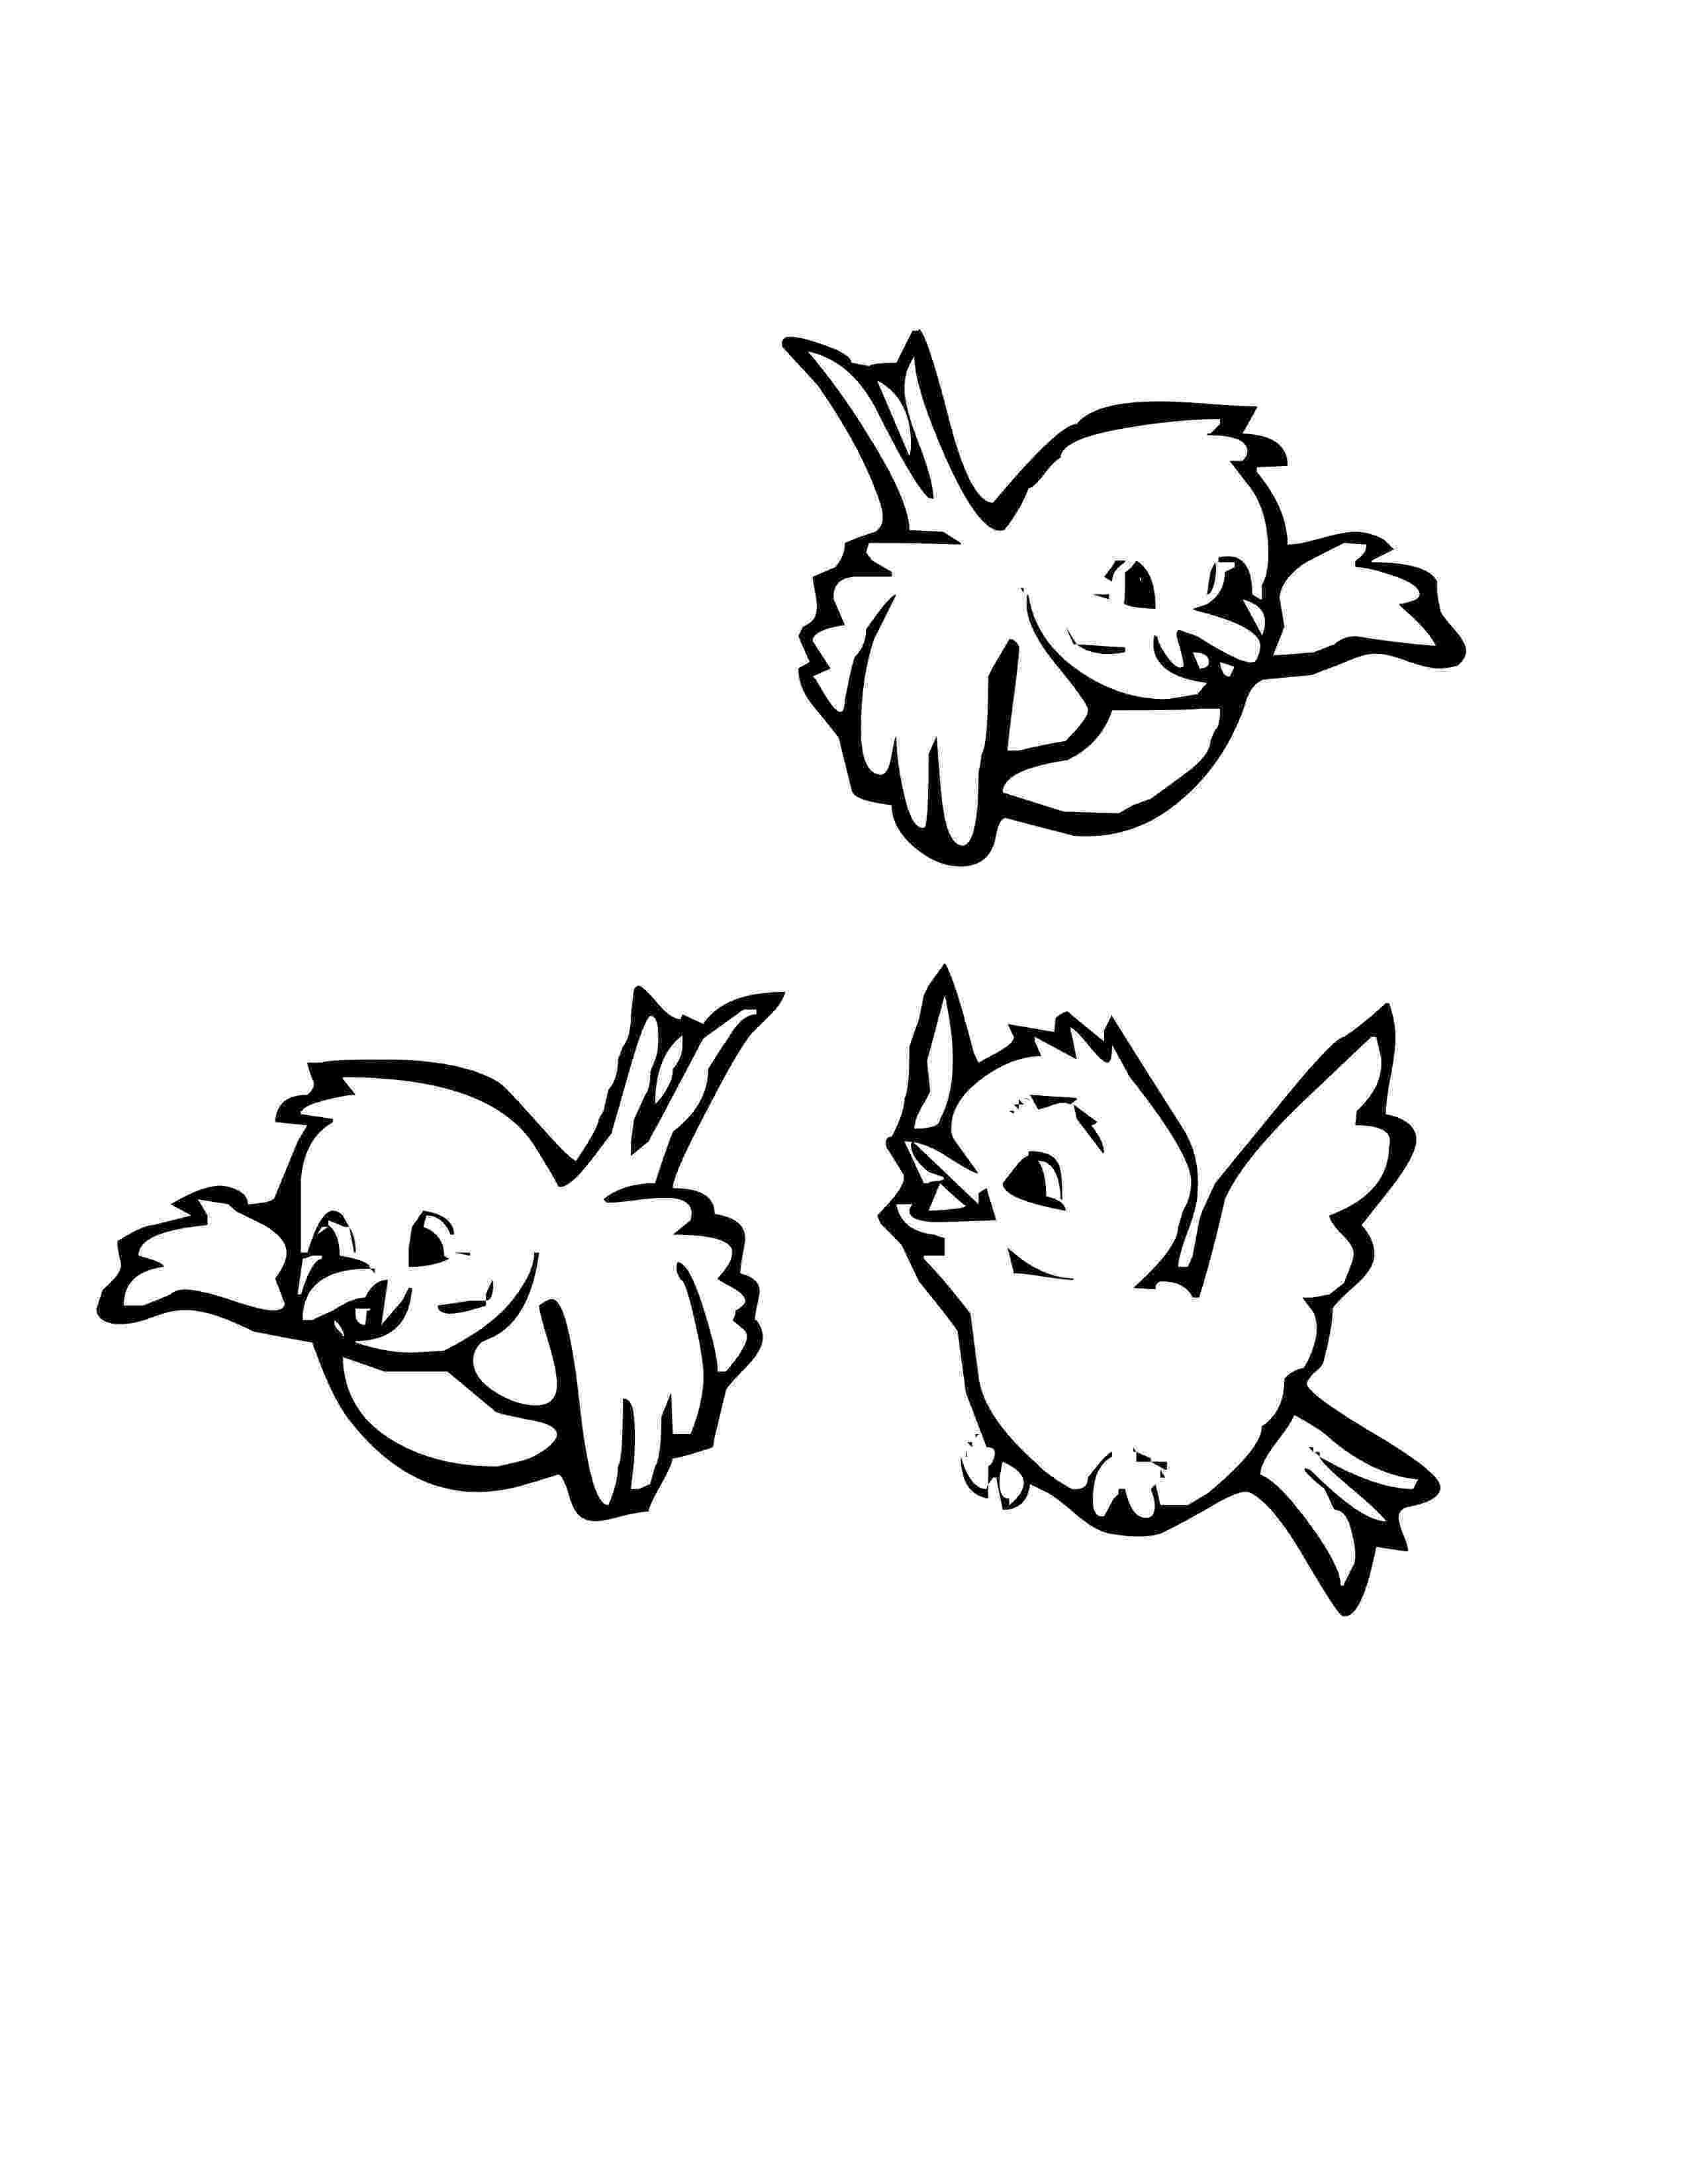 bird coloring images snow white forest animals snow white bird coloring pages bird coloring images